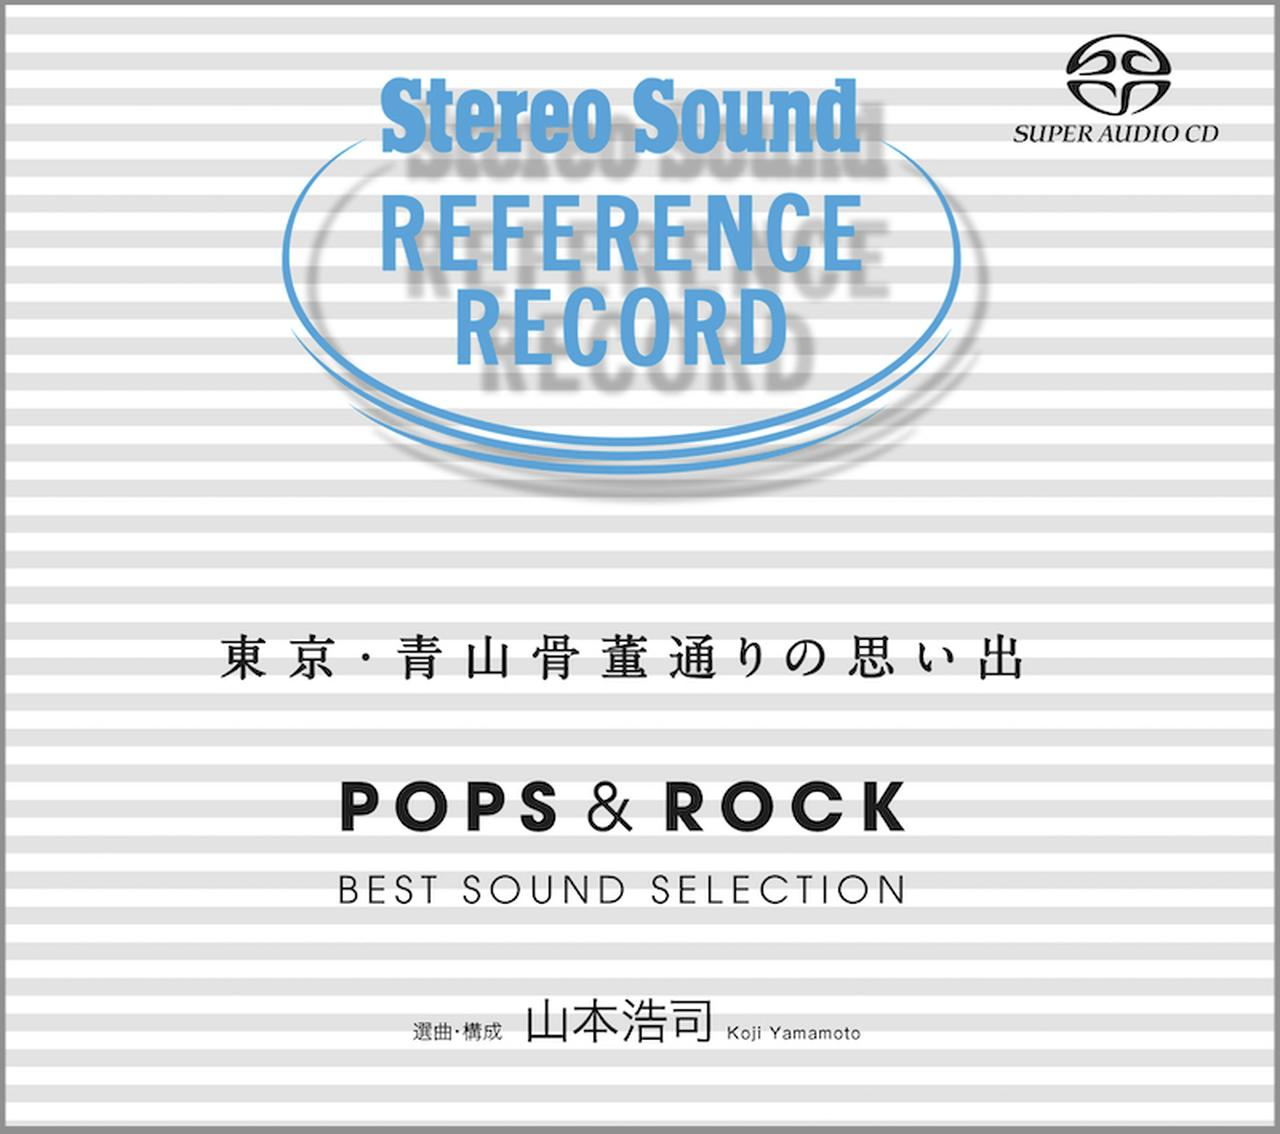 Images : 8番目の画像 - 今秋発売されたポップスの名盤・新作たち - Stereo Sound ONLINE